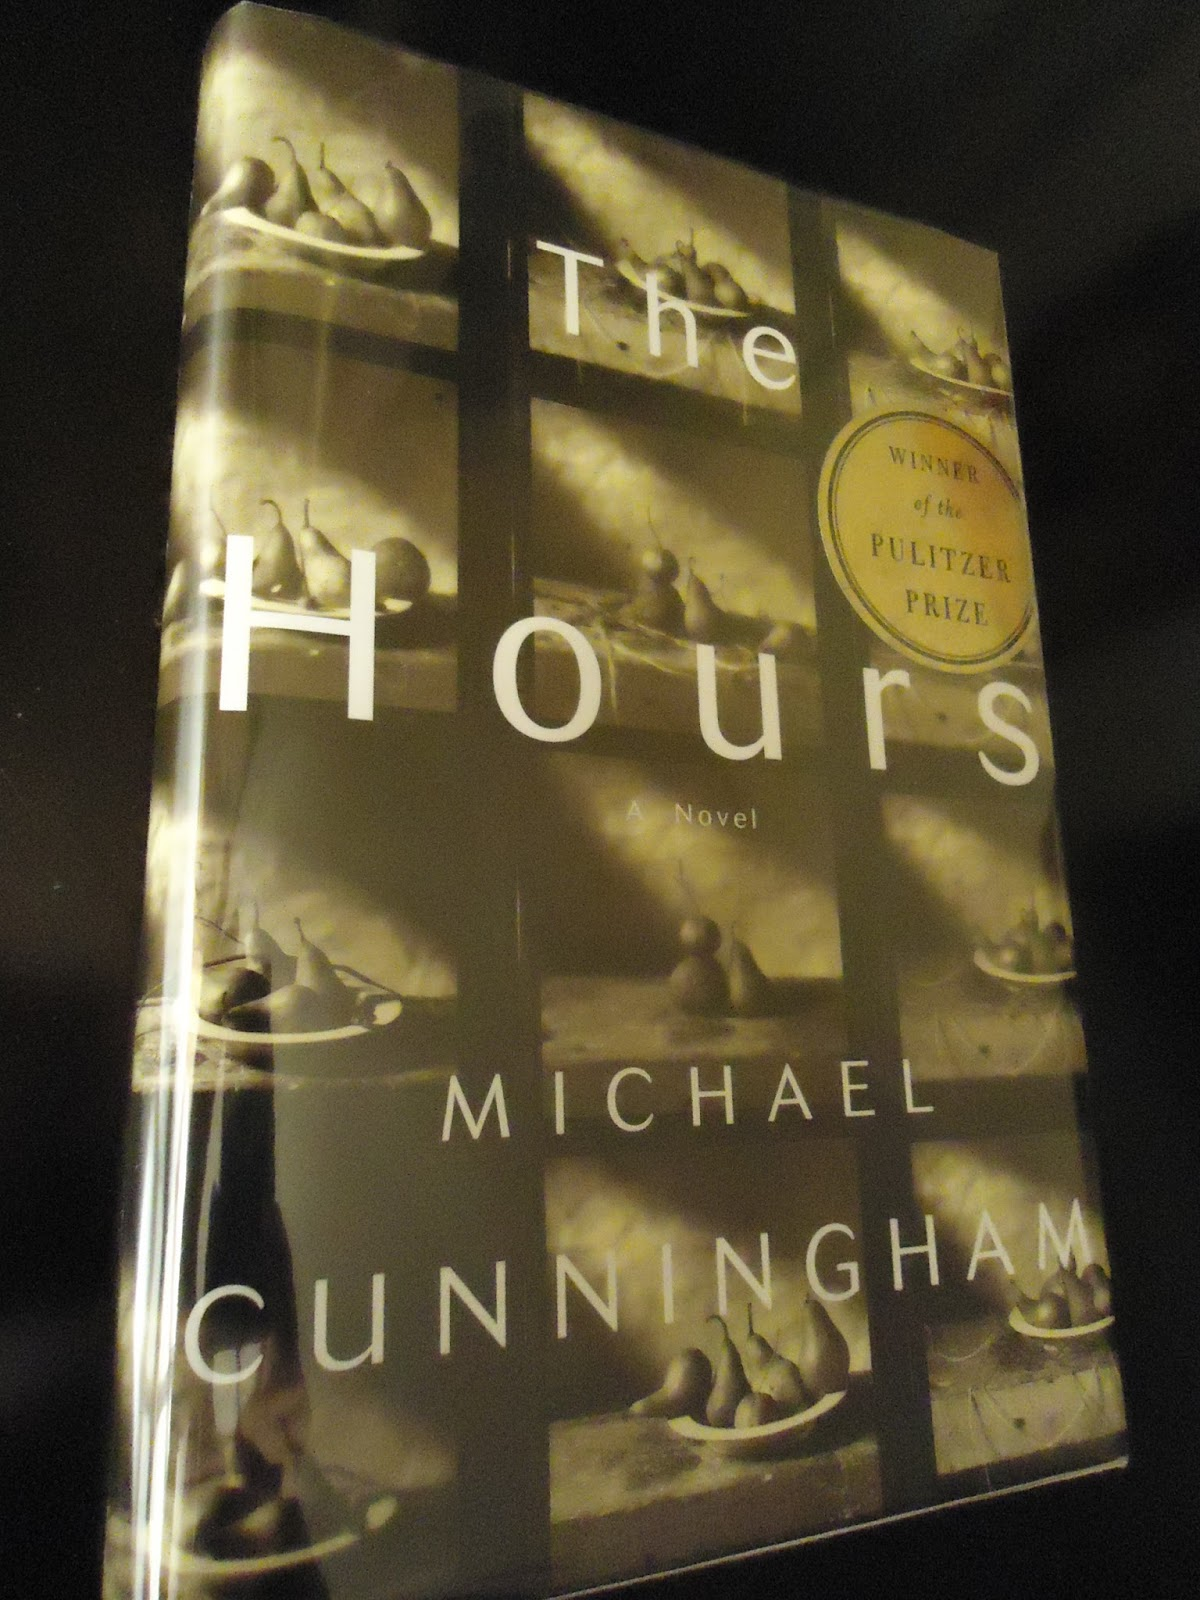 12 great books it s also a tribute to another book and a puzzle the story of one of the three main characters parallels the plot and